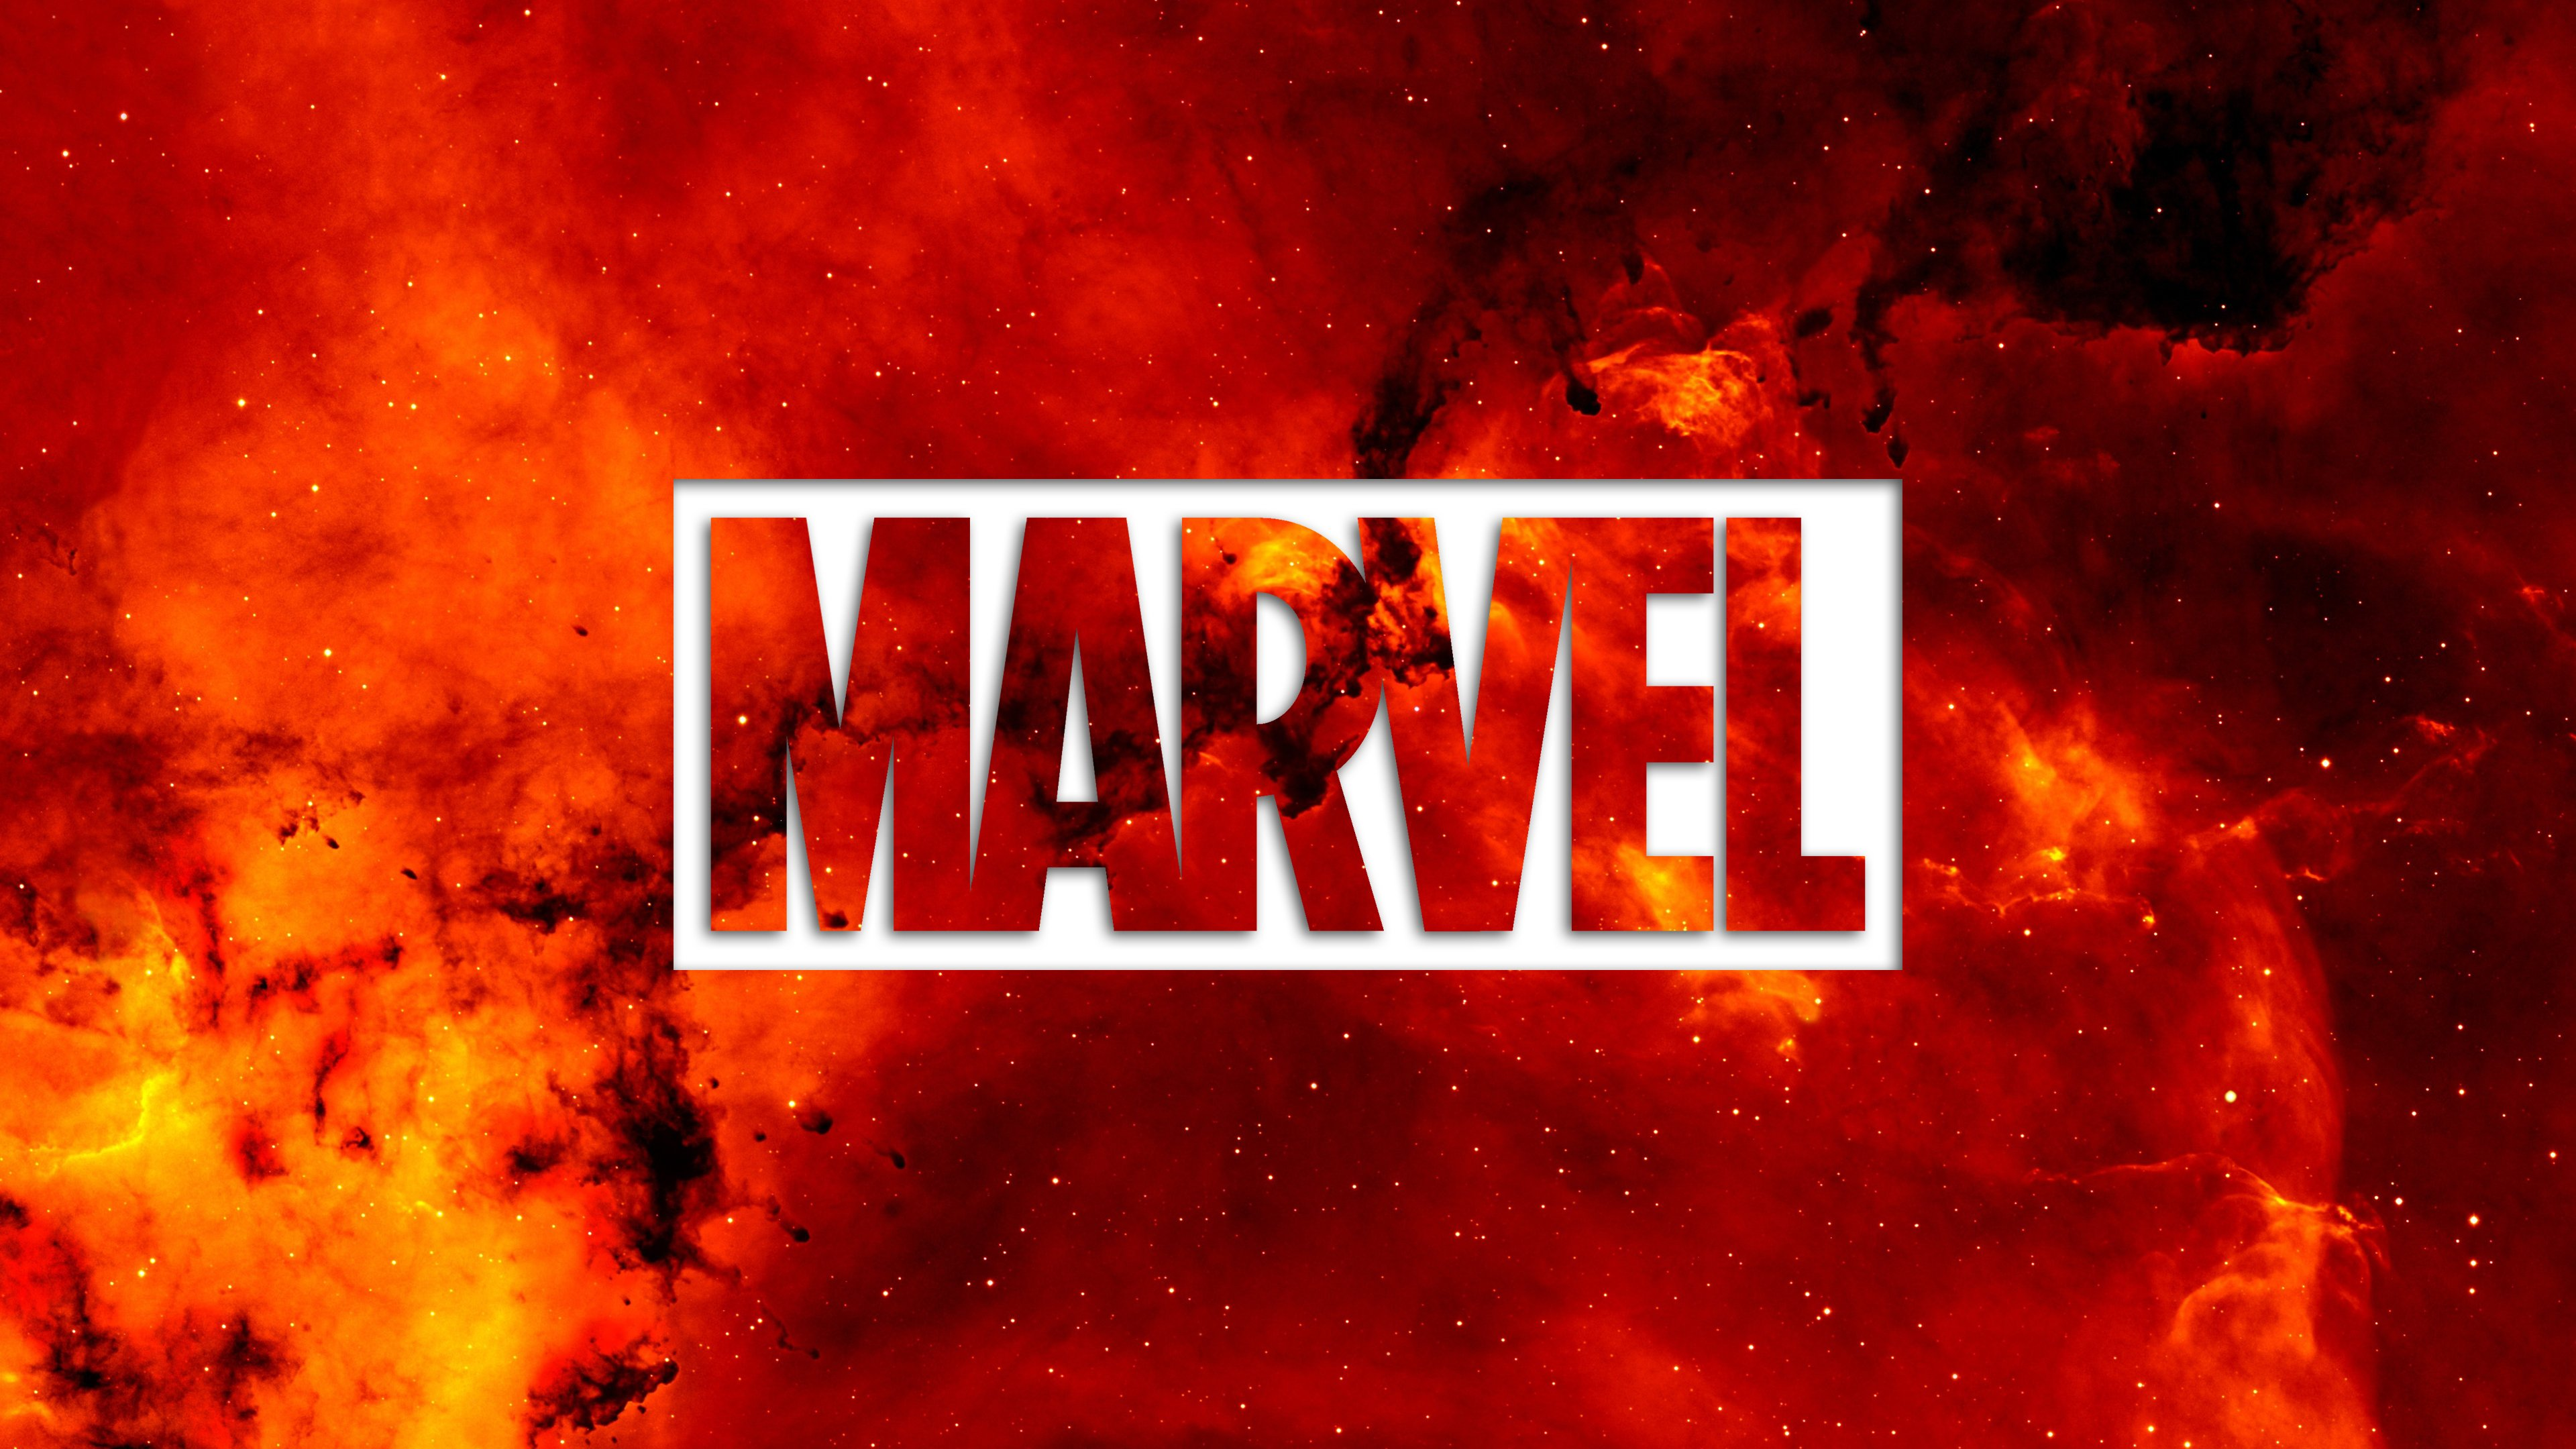 Marvel 4k Wallpapers For Your Desktop Or Mobile Screen Free And Easy To Download